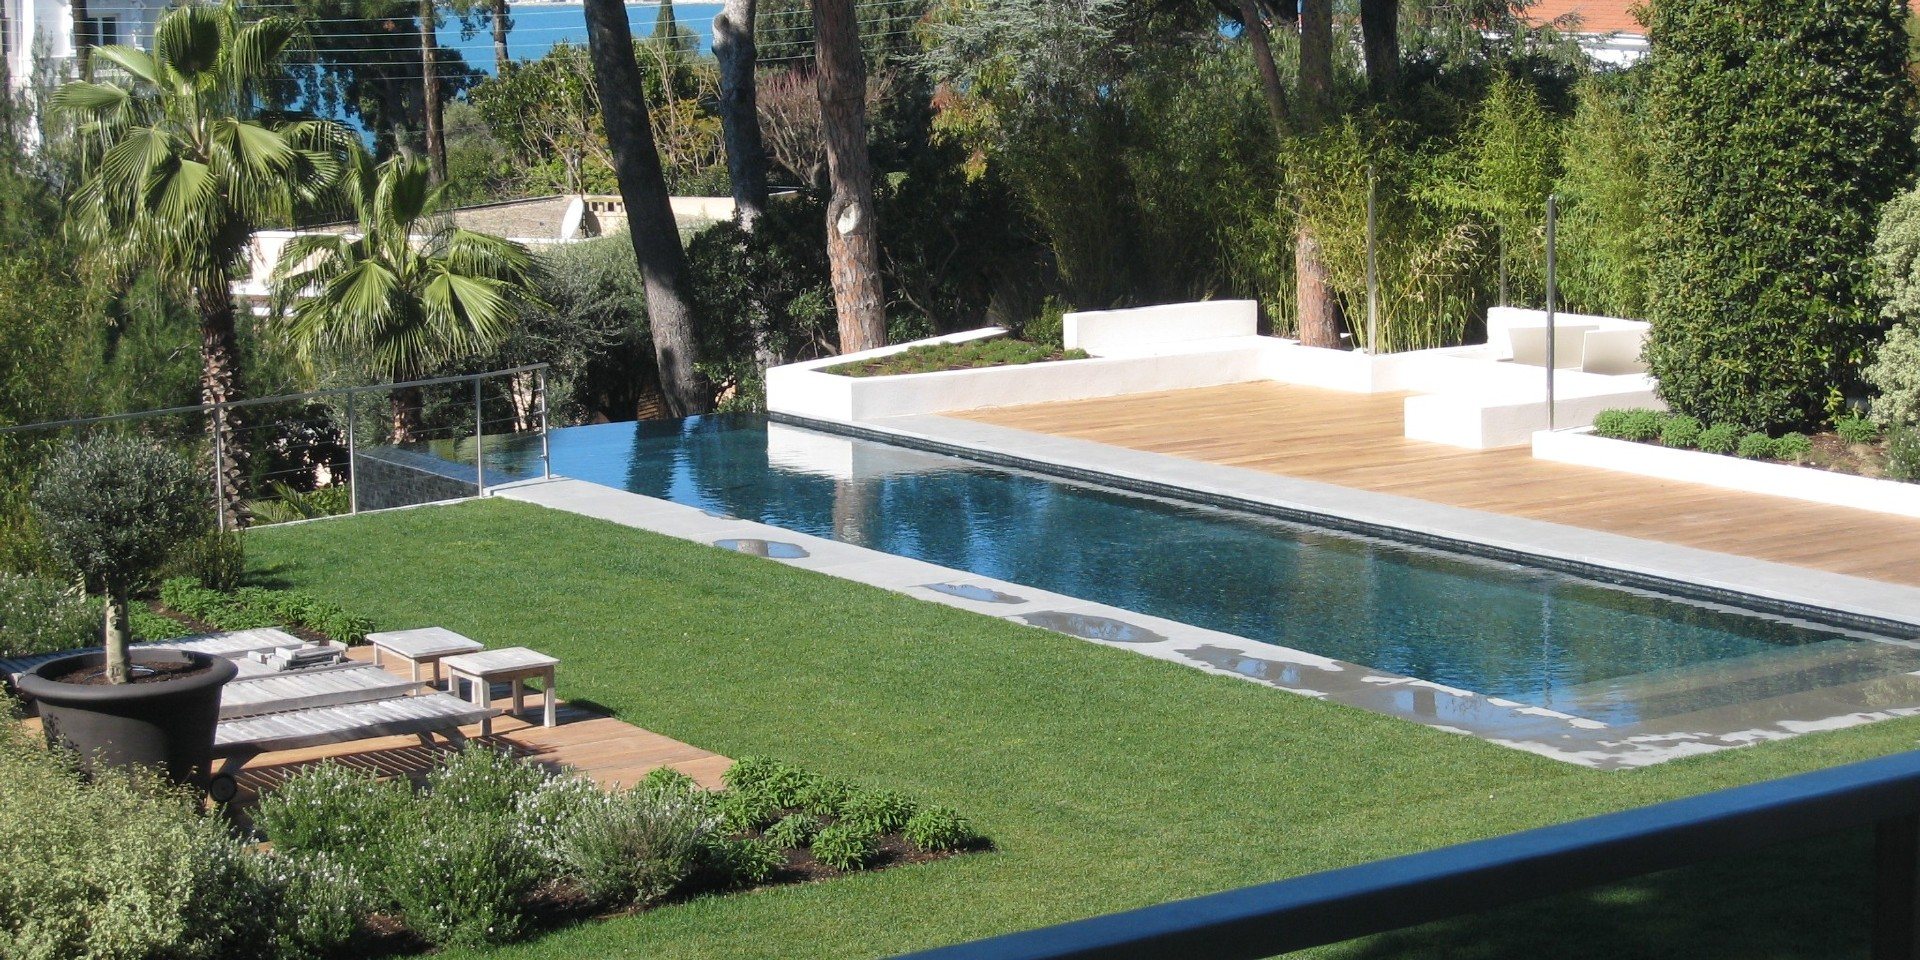 Hortus cecile chaltin architecte paysagiste 06 antibes for Offre architecte paysagiste